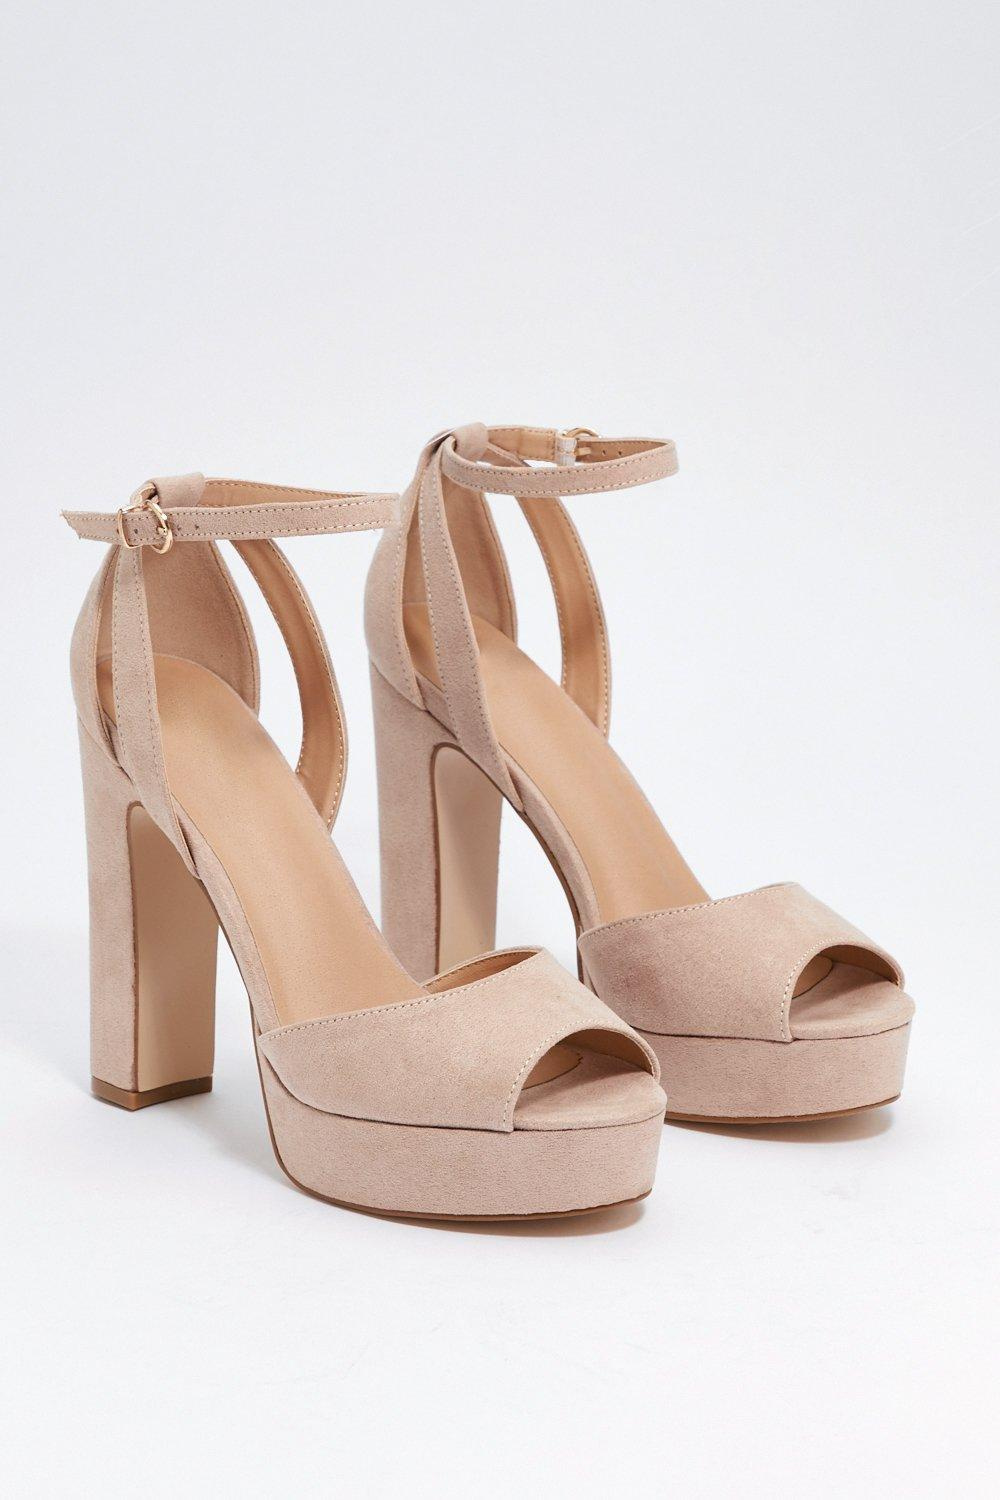 bfe59080448 Womens Nude Two-Part of Glass Heel